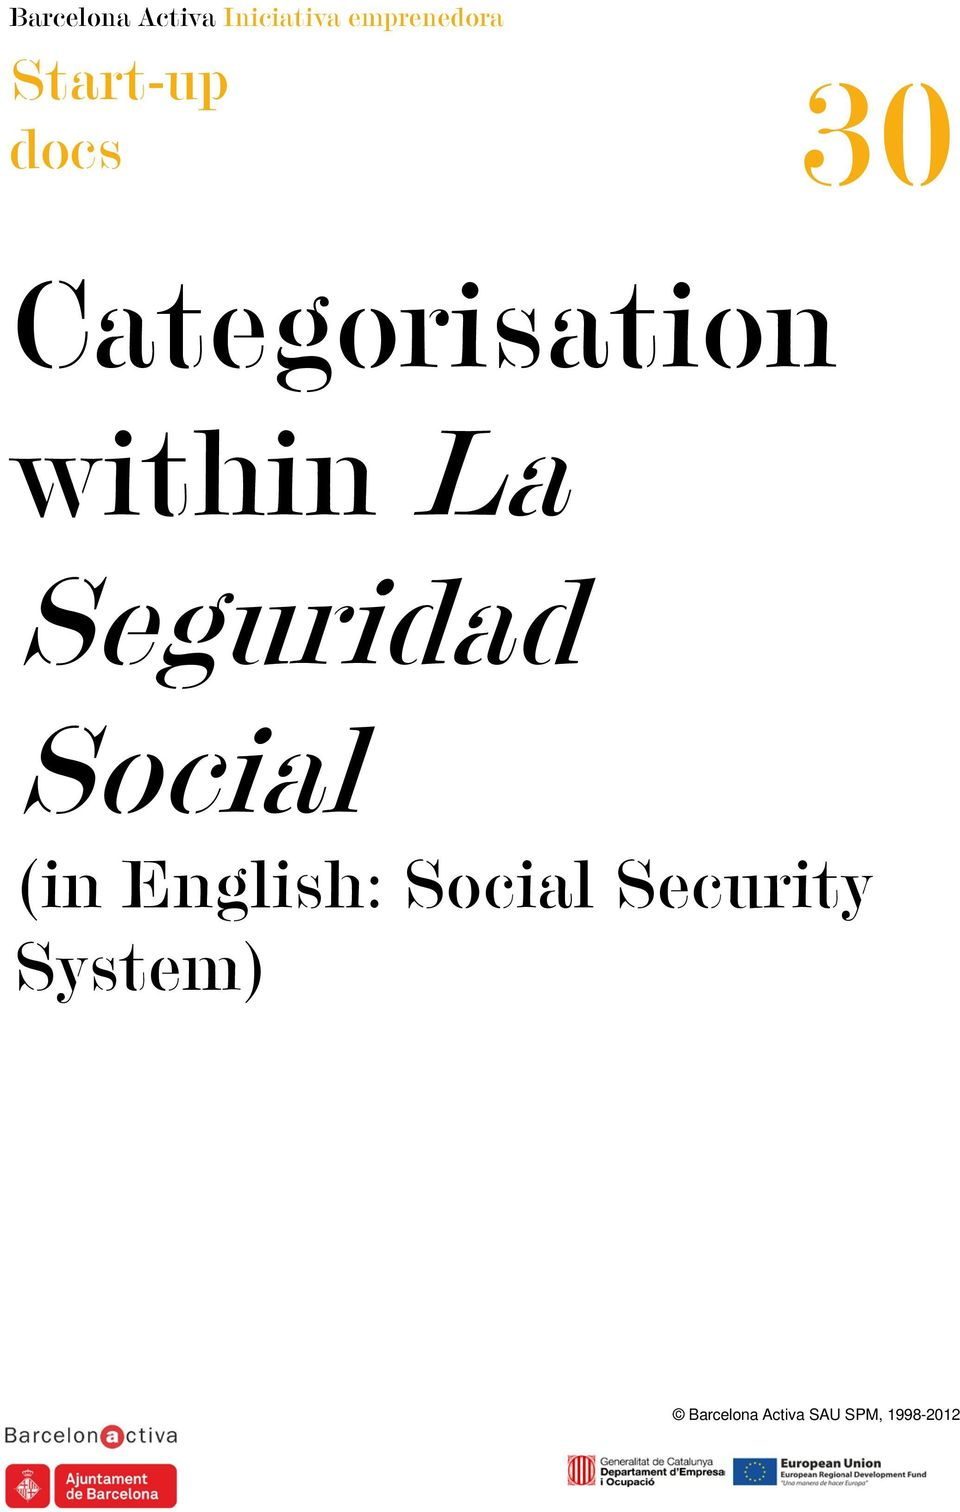 English: Social Security System)